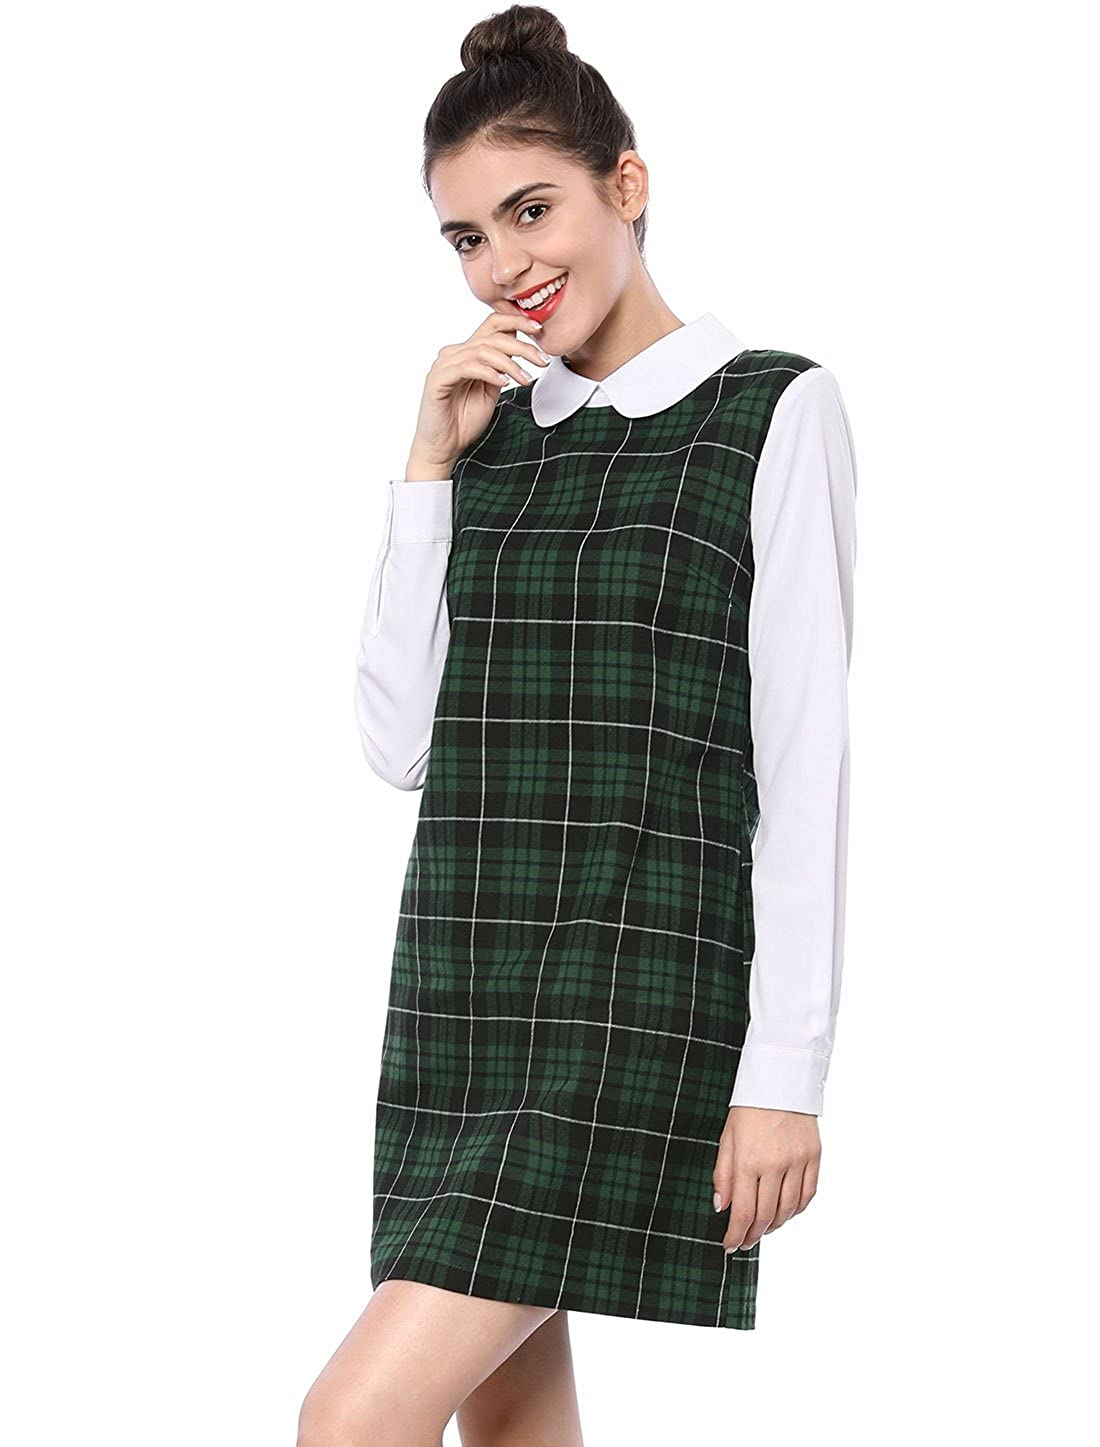 b4614bac1a Allegra K Women s Contrast Peter Pan Collar Long Sleeve Shift Plaid Dress  at Amazon Women s Clothing store